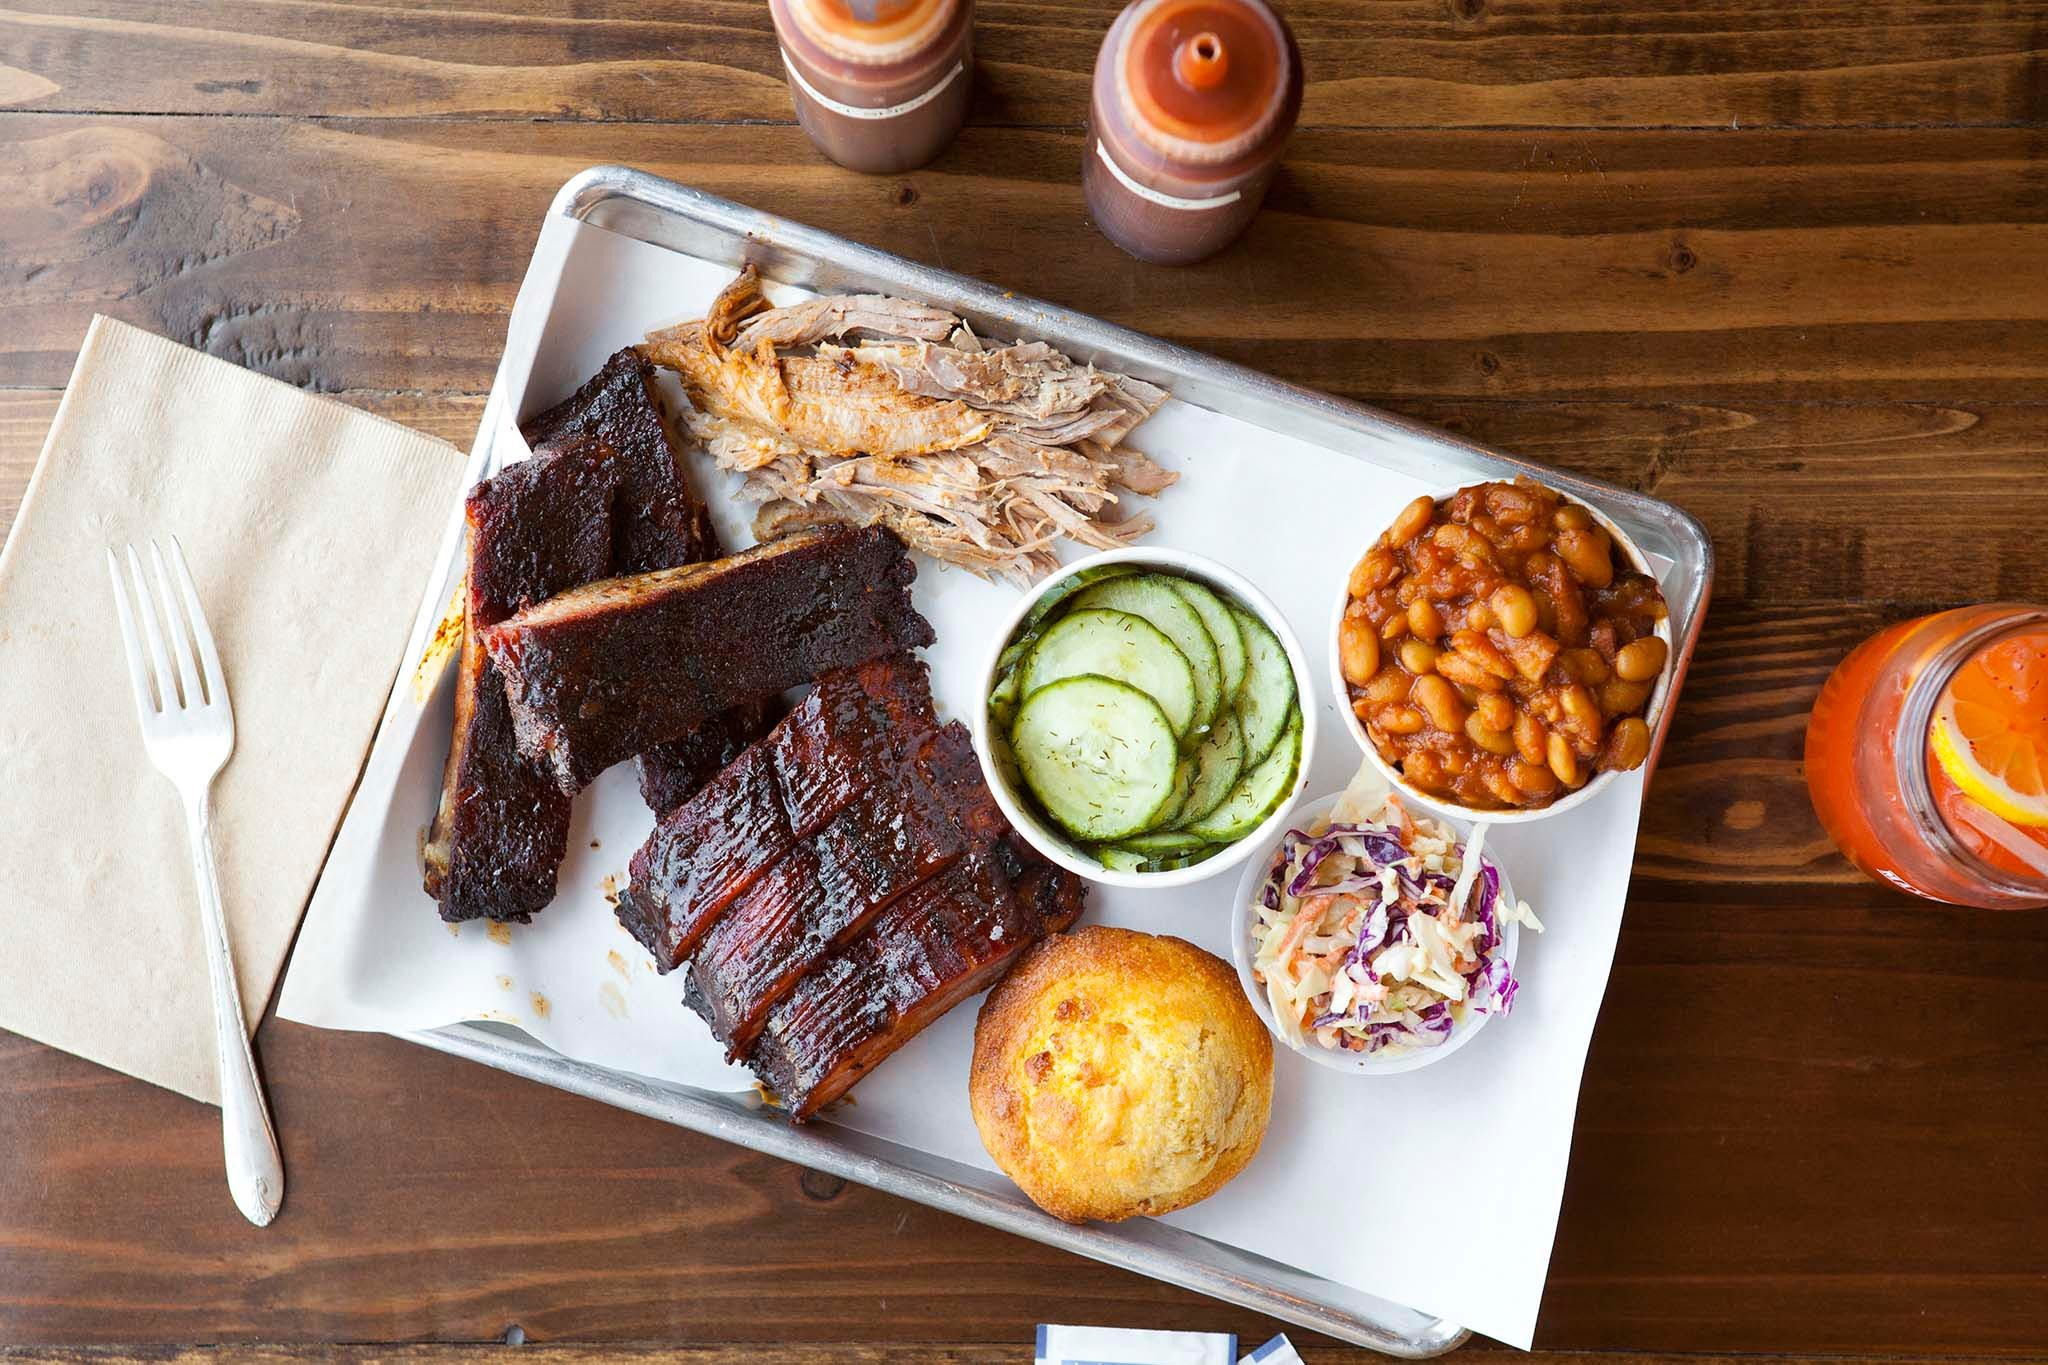 Spence's Platter of Pork with cucumber salad, cornbread, cole slaw, and baked beans